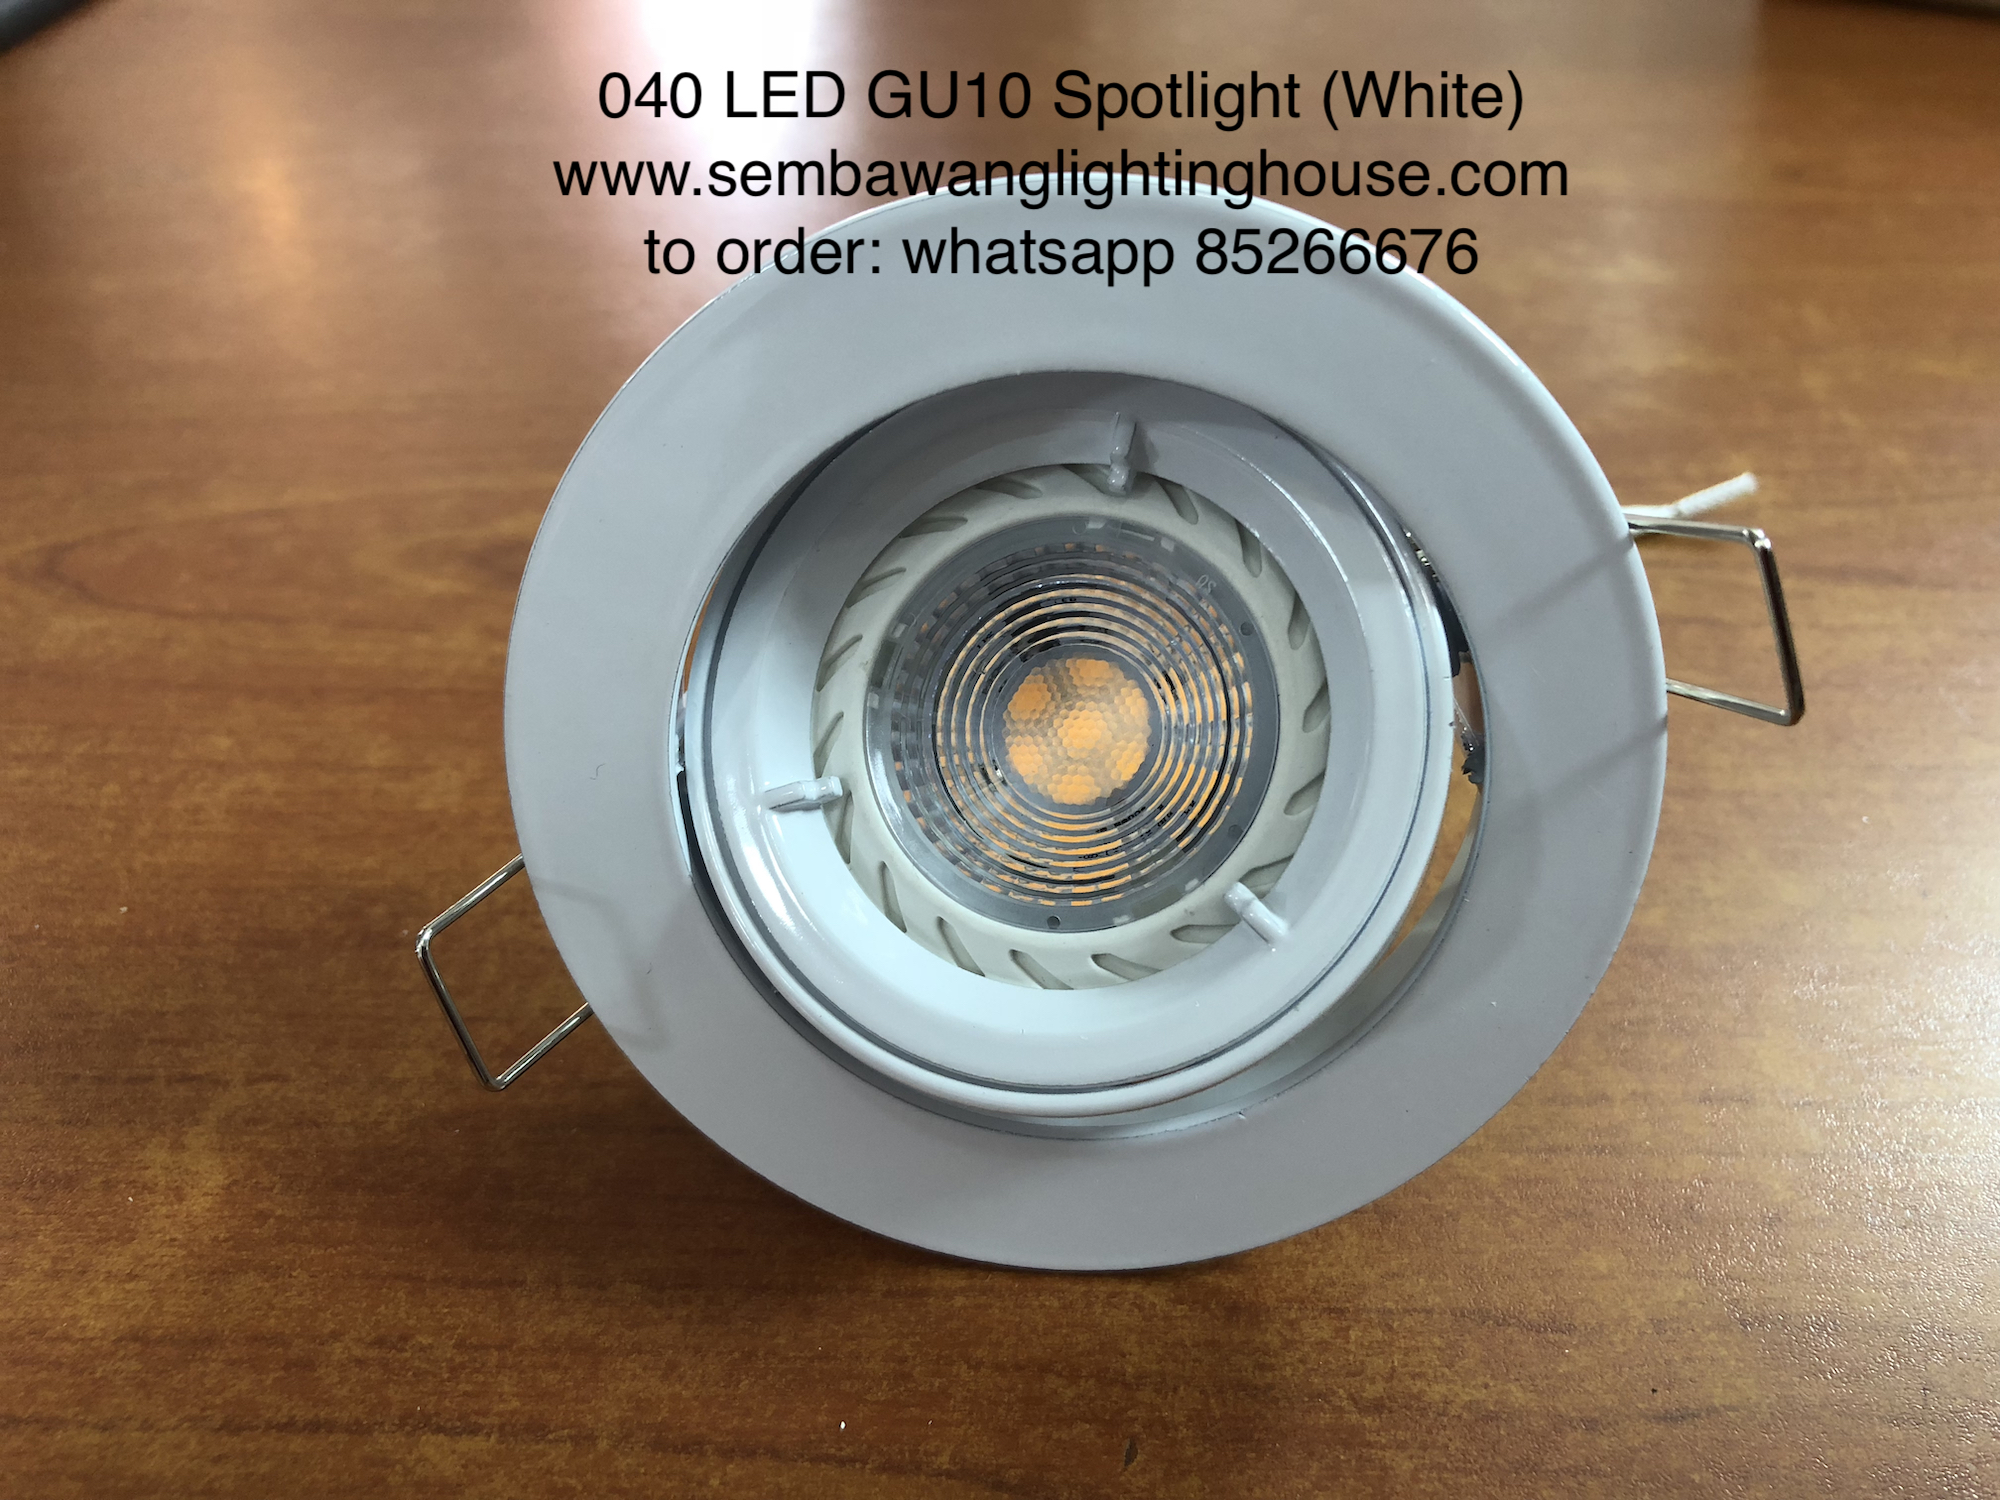 040-wh-led-spotlight-gu10-b.jpg